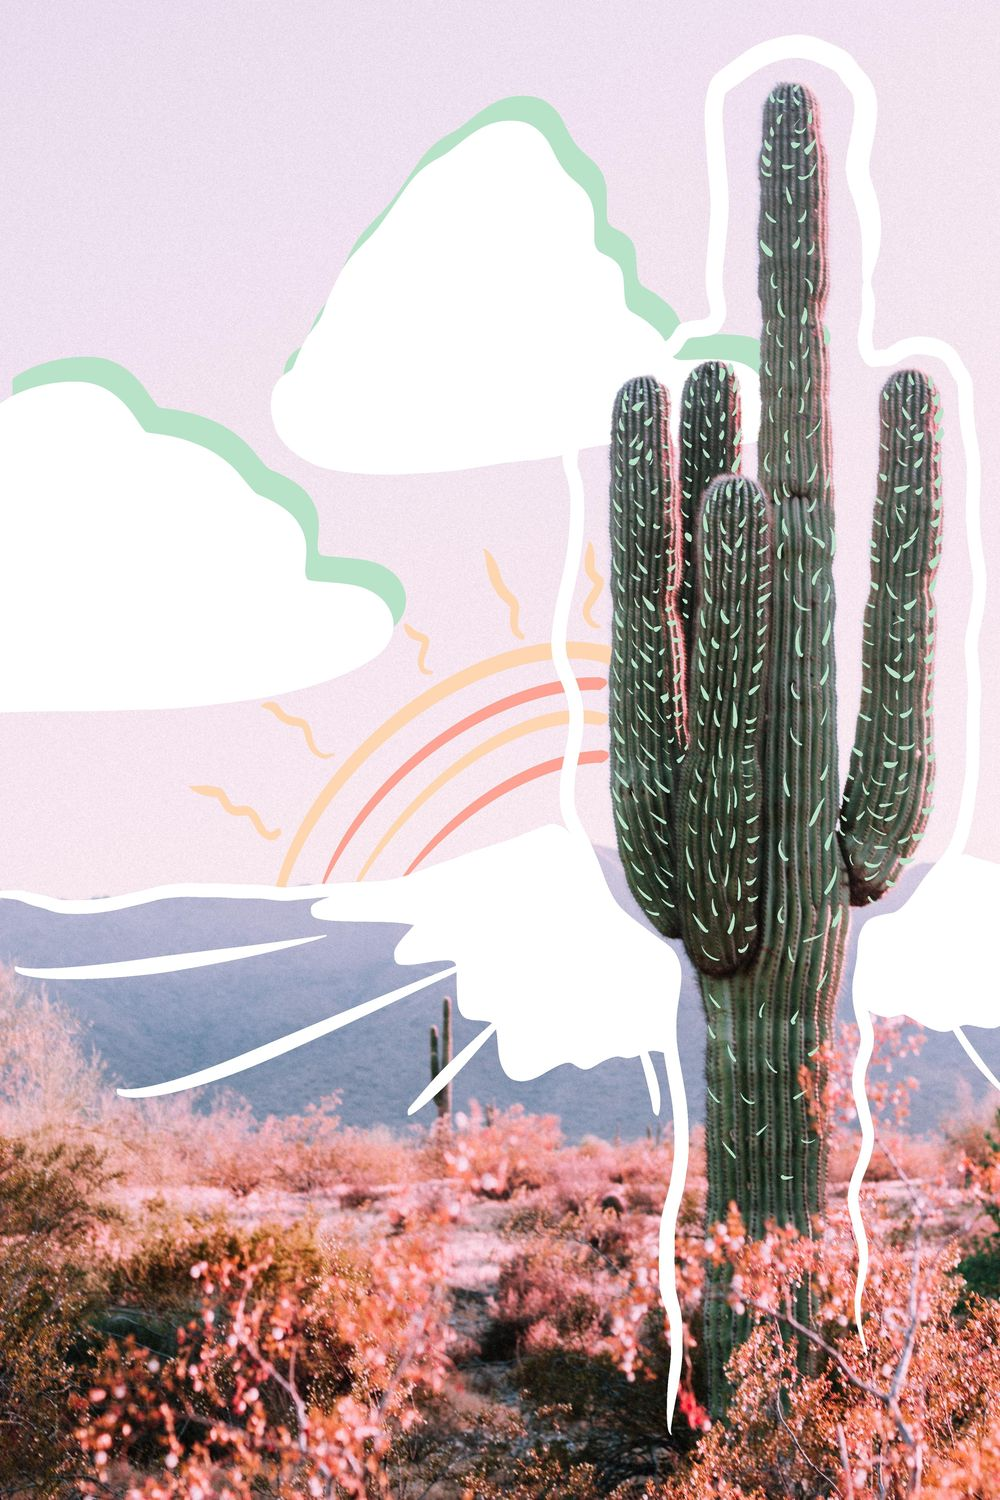 Cactus, mandala and lettering - image 3 - student project